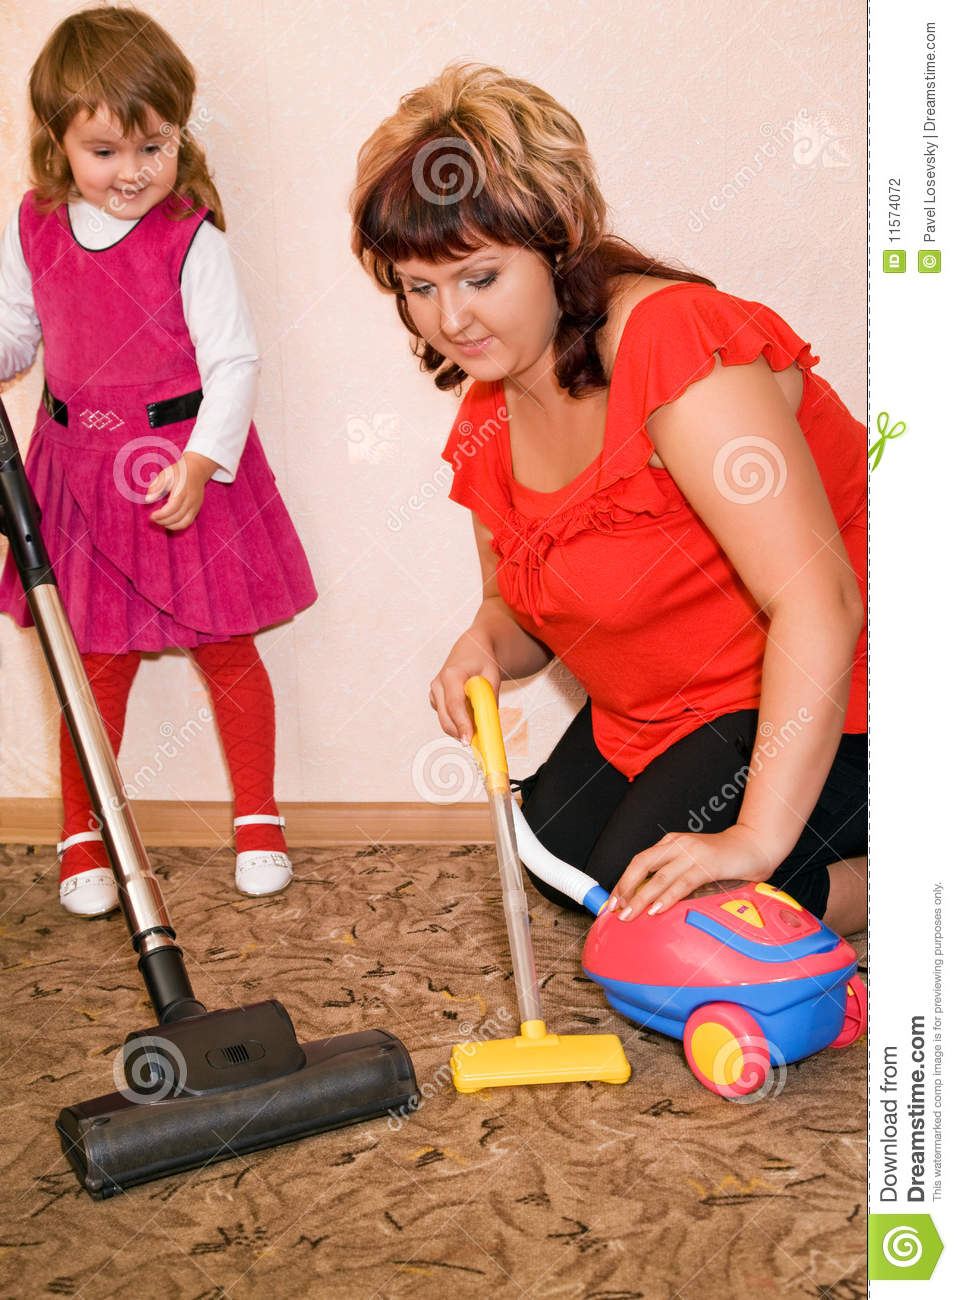 Little Girl And Woman Vacuum A Carpet Stock Photography - Image: 11574072